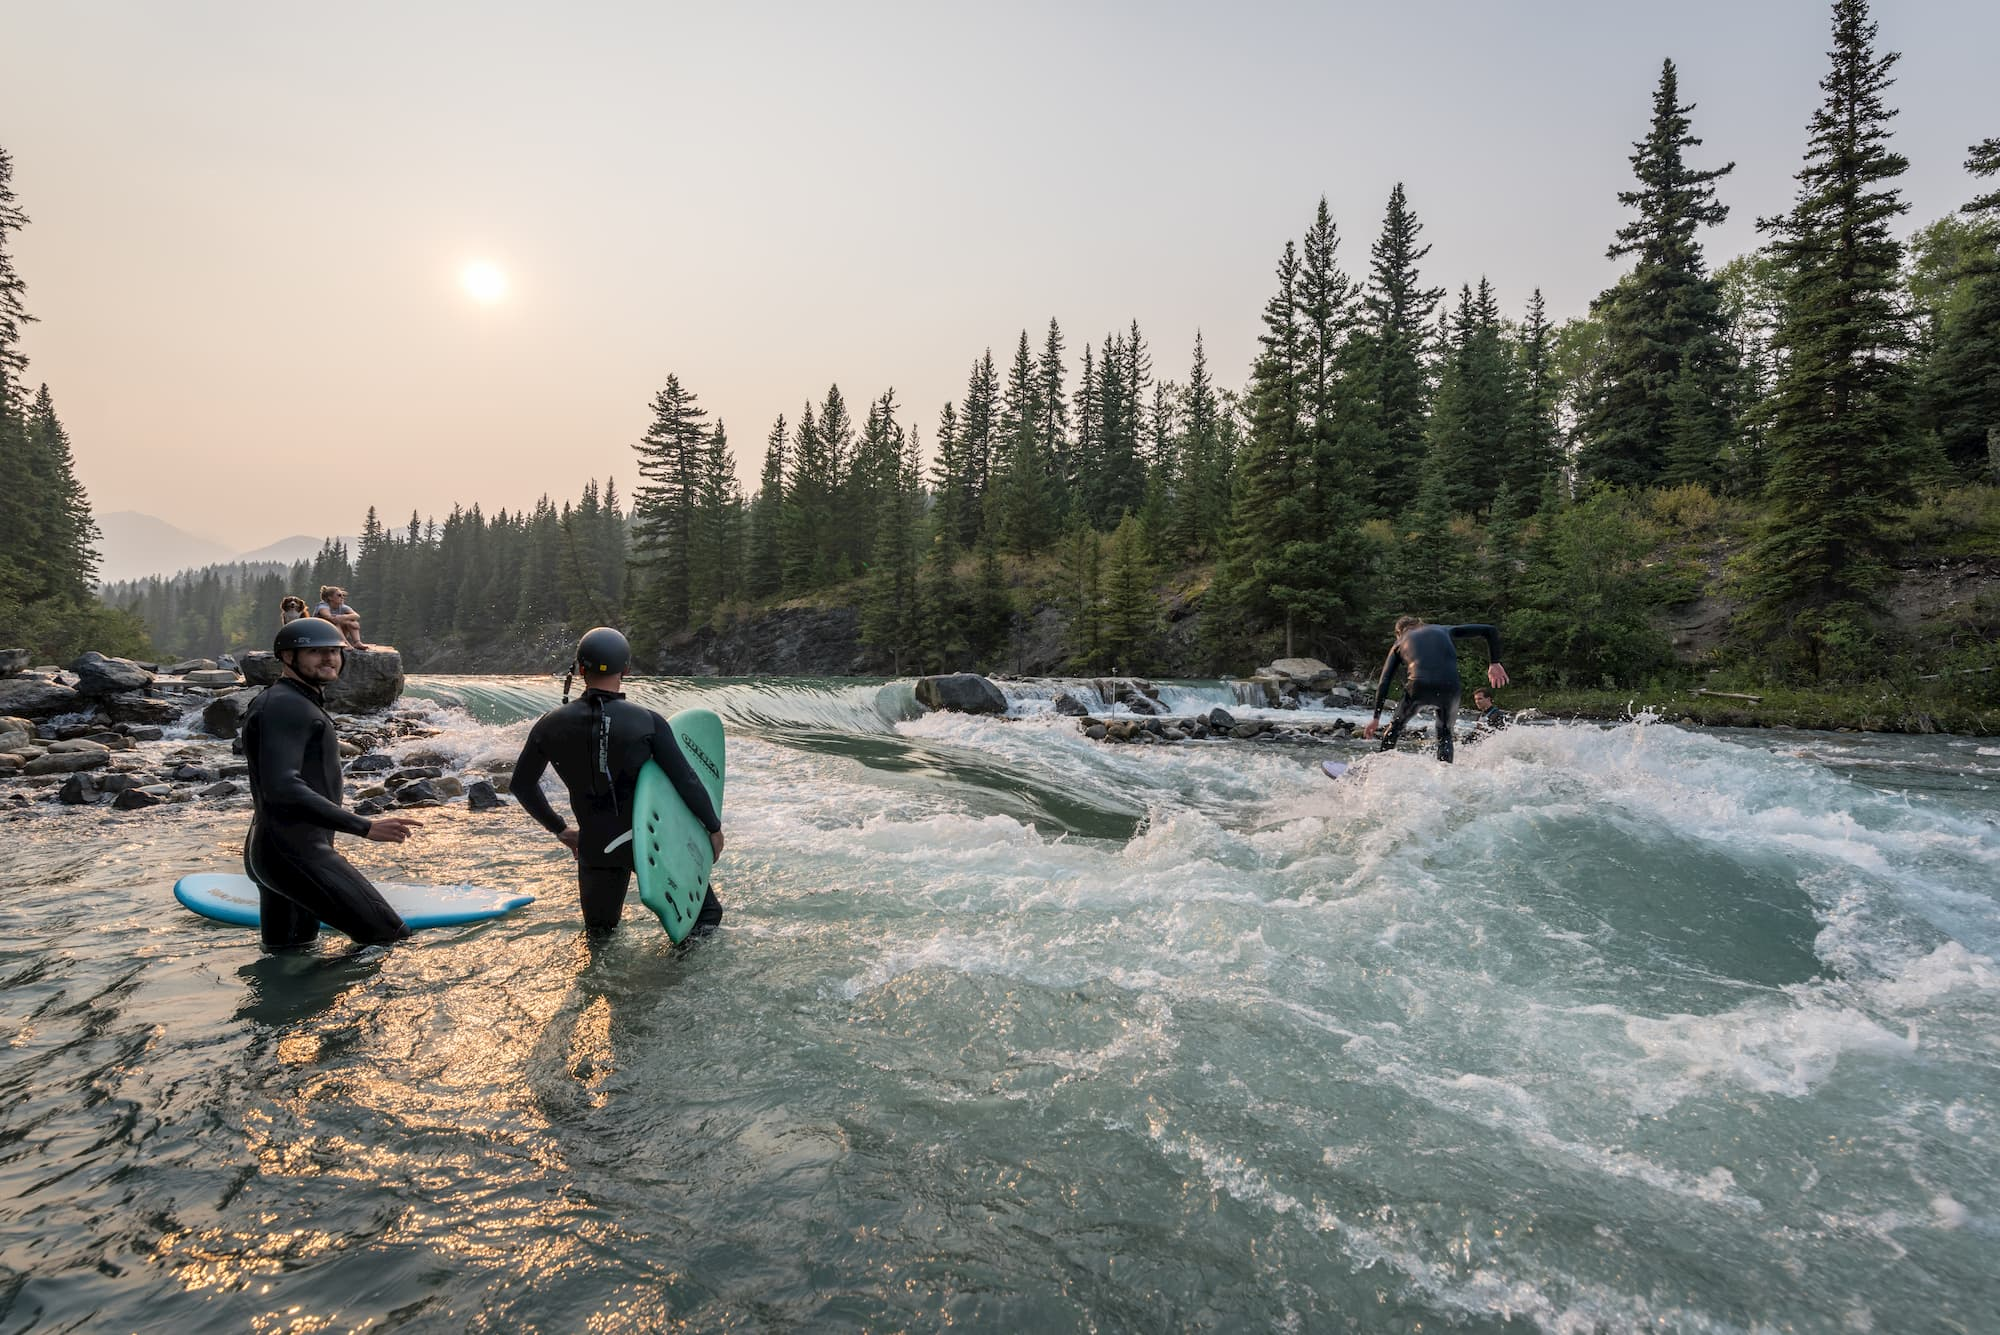 River surfers looking upon person riding the wave.